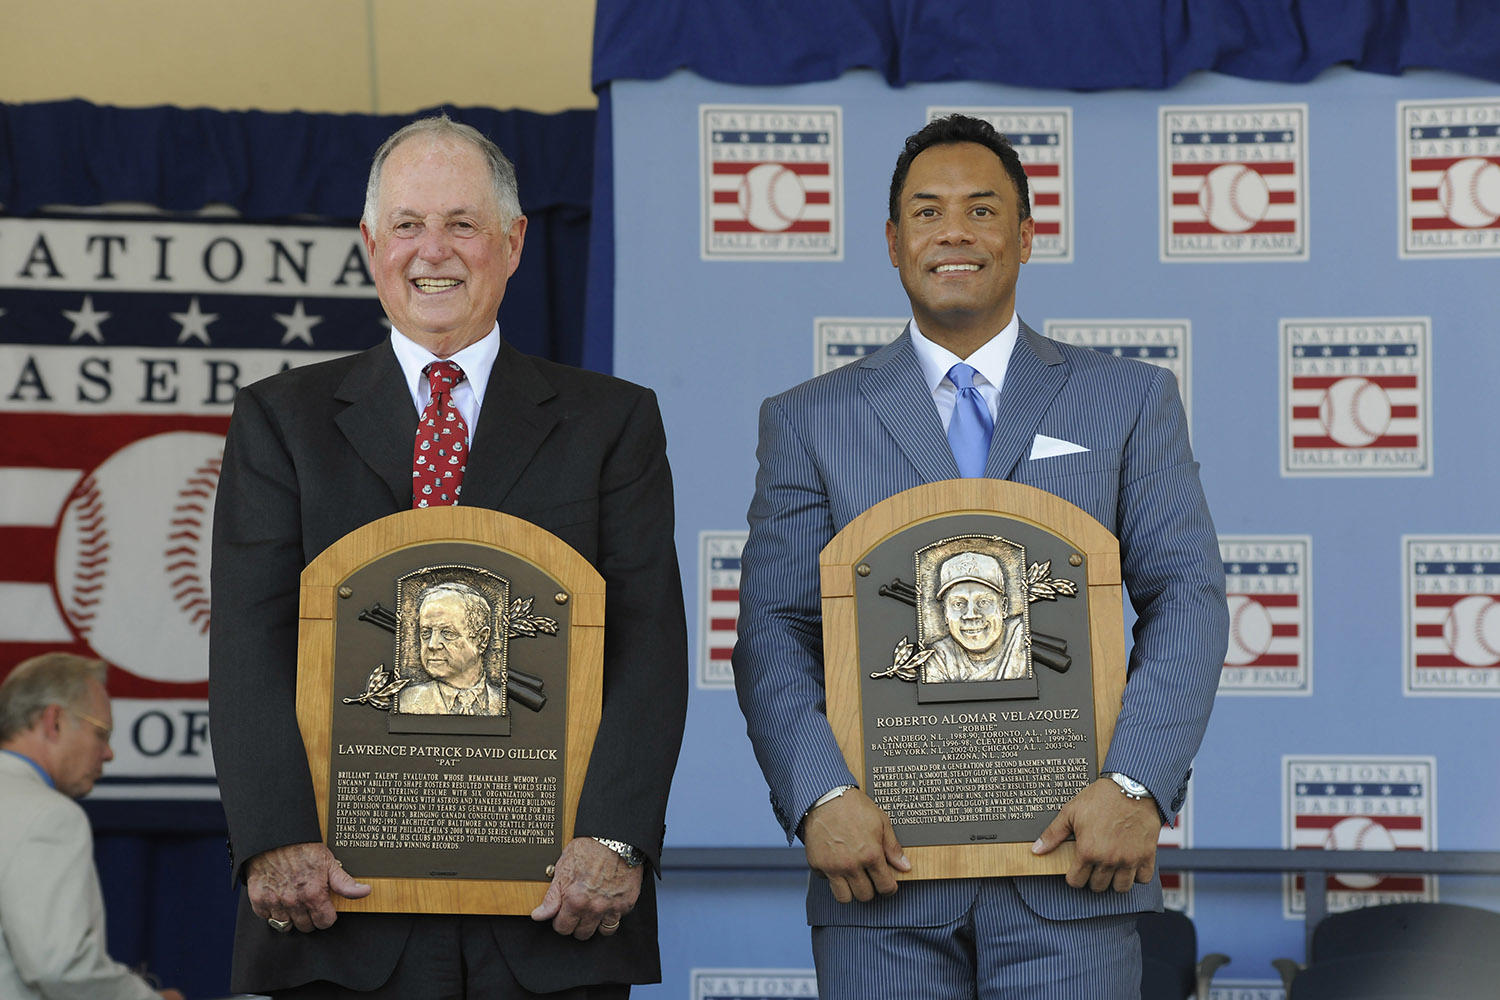 Roberto Alomar (right) would be inducted into the Hall of Fame Class of 2011 with Pat Gillick (left), who brought Alomar to both Toronto and Baltimore. (Milo Stewart Jr. / National Baseball Hall of Fame)